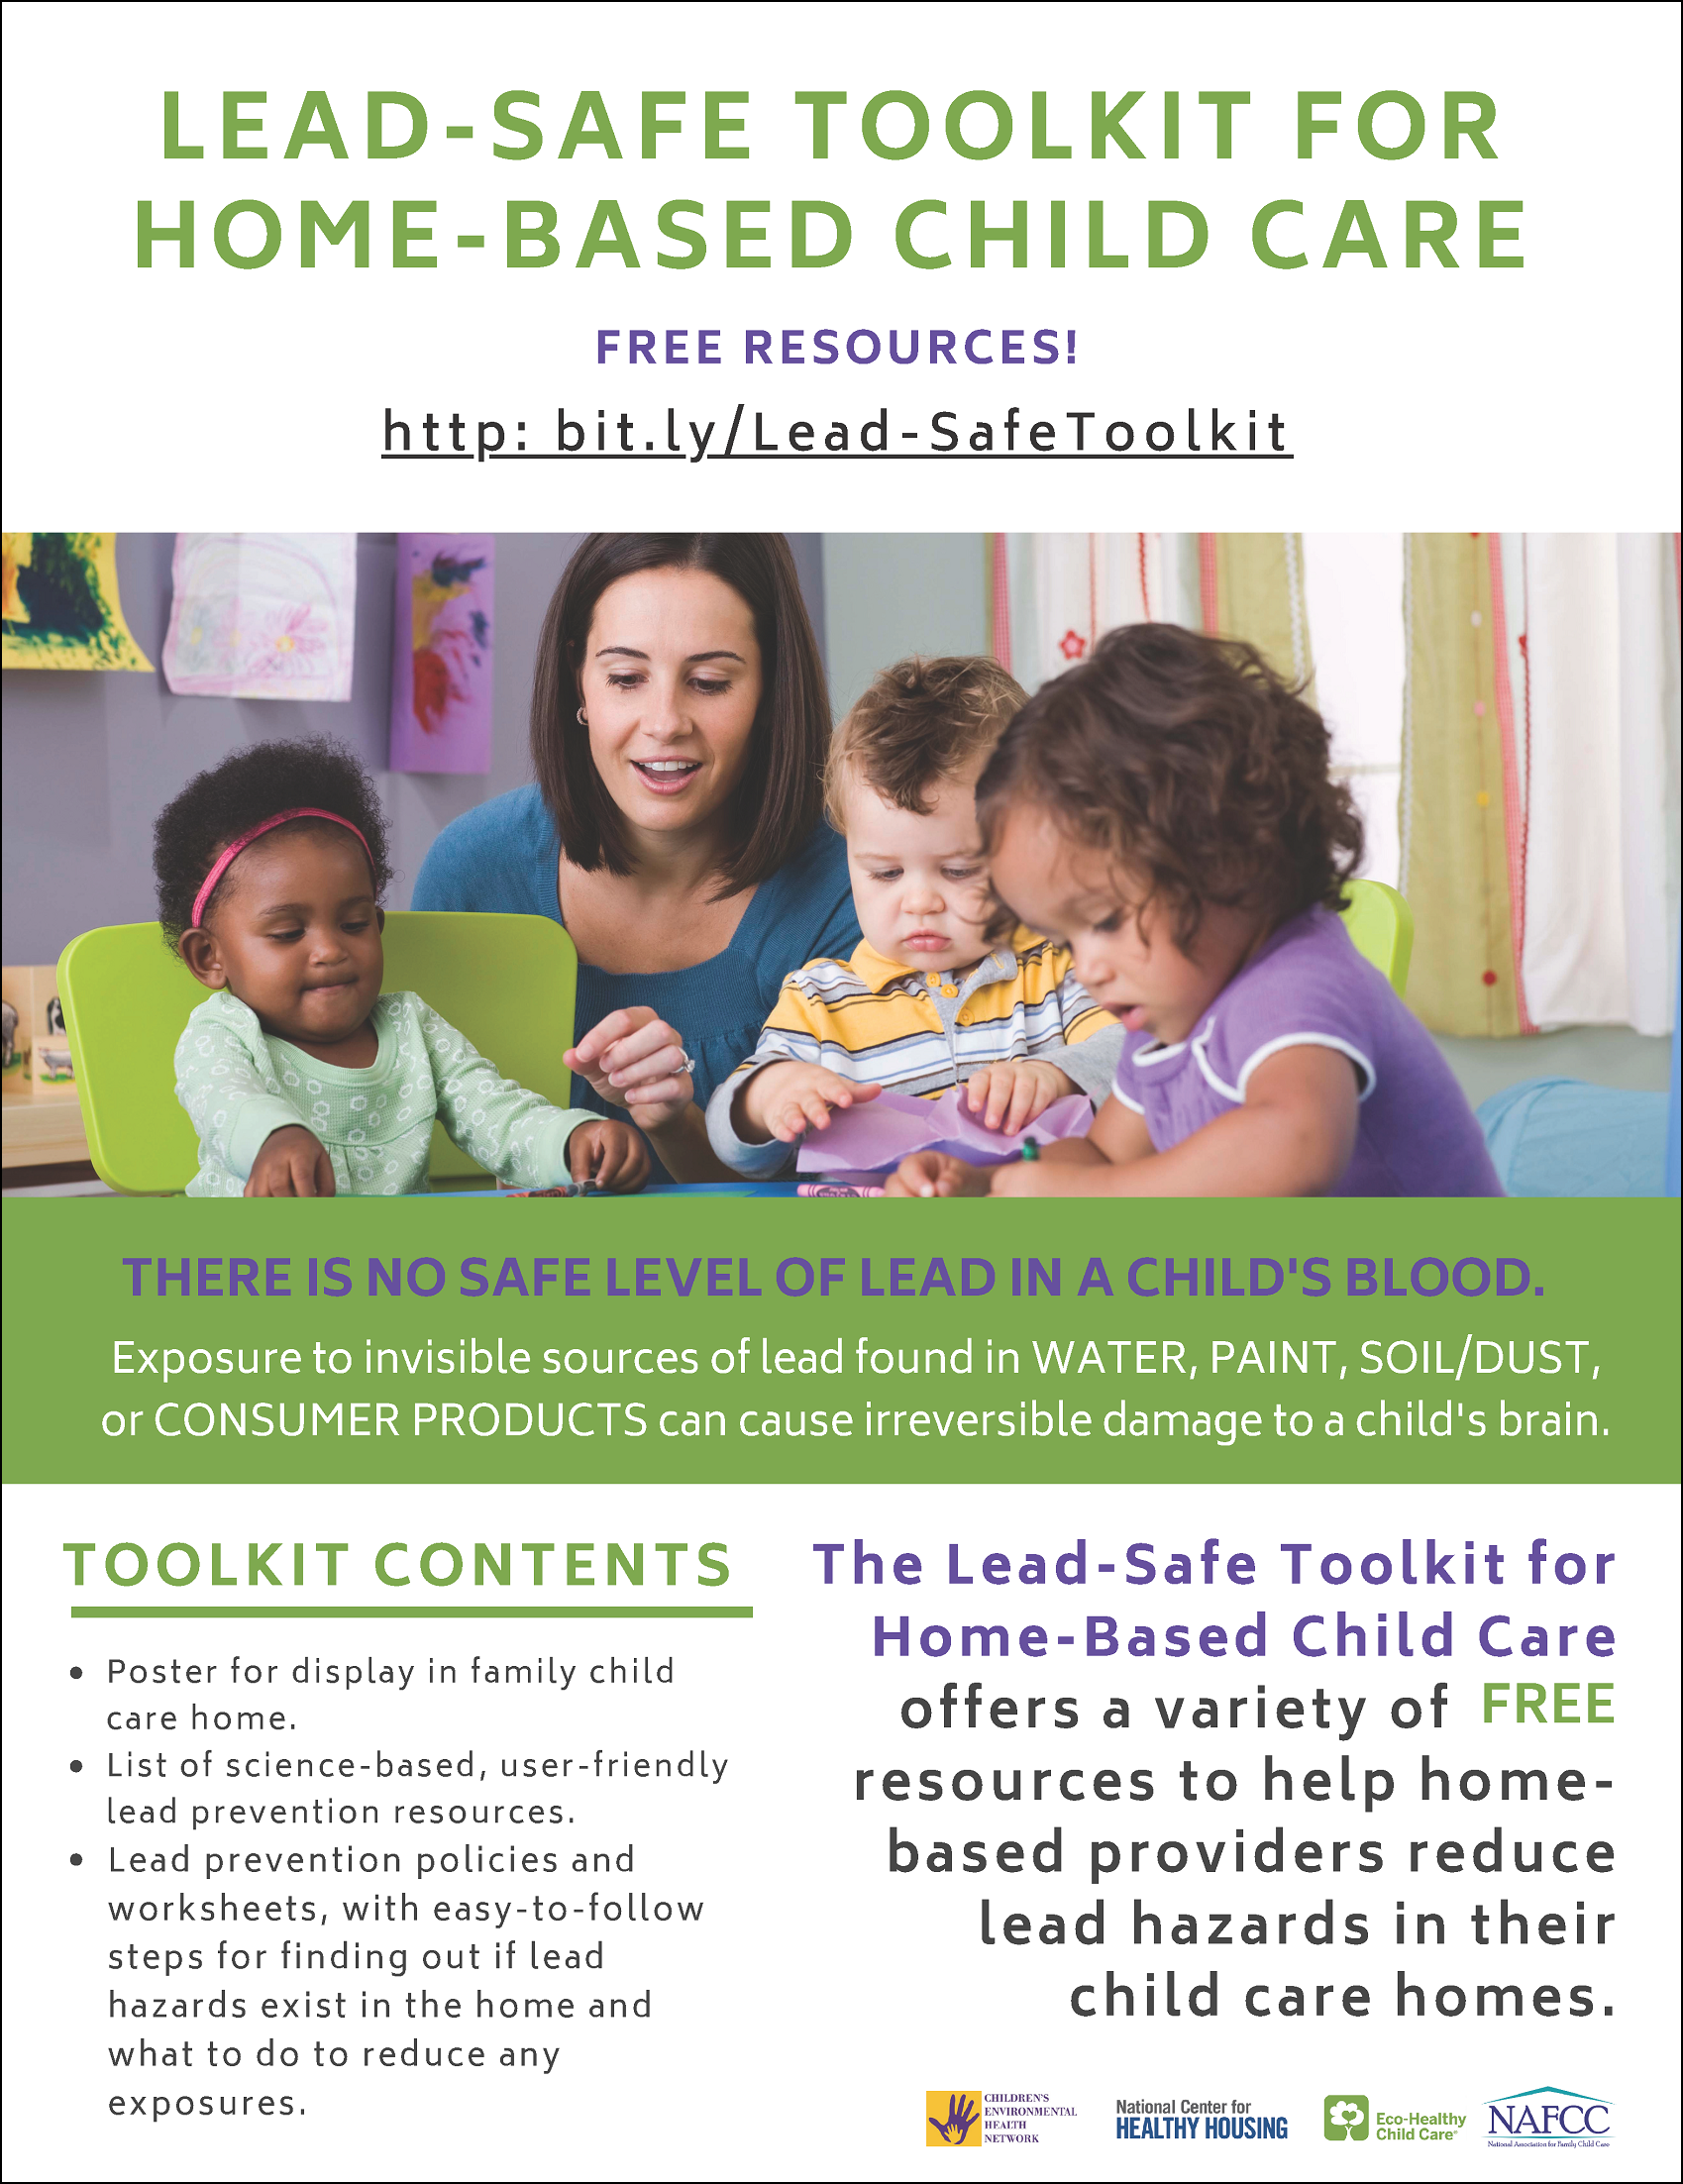 Lead-Safe Toolkit for Home-Based Child Care Promotional Flyer